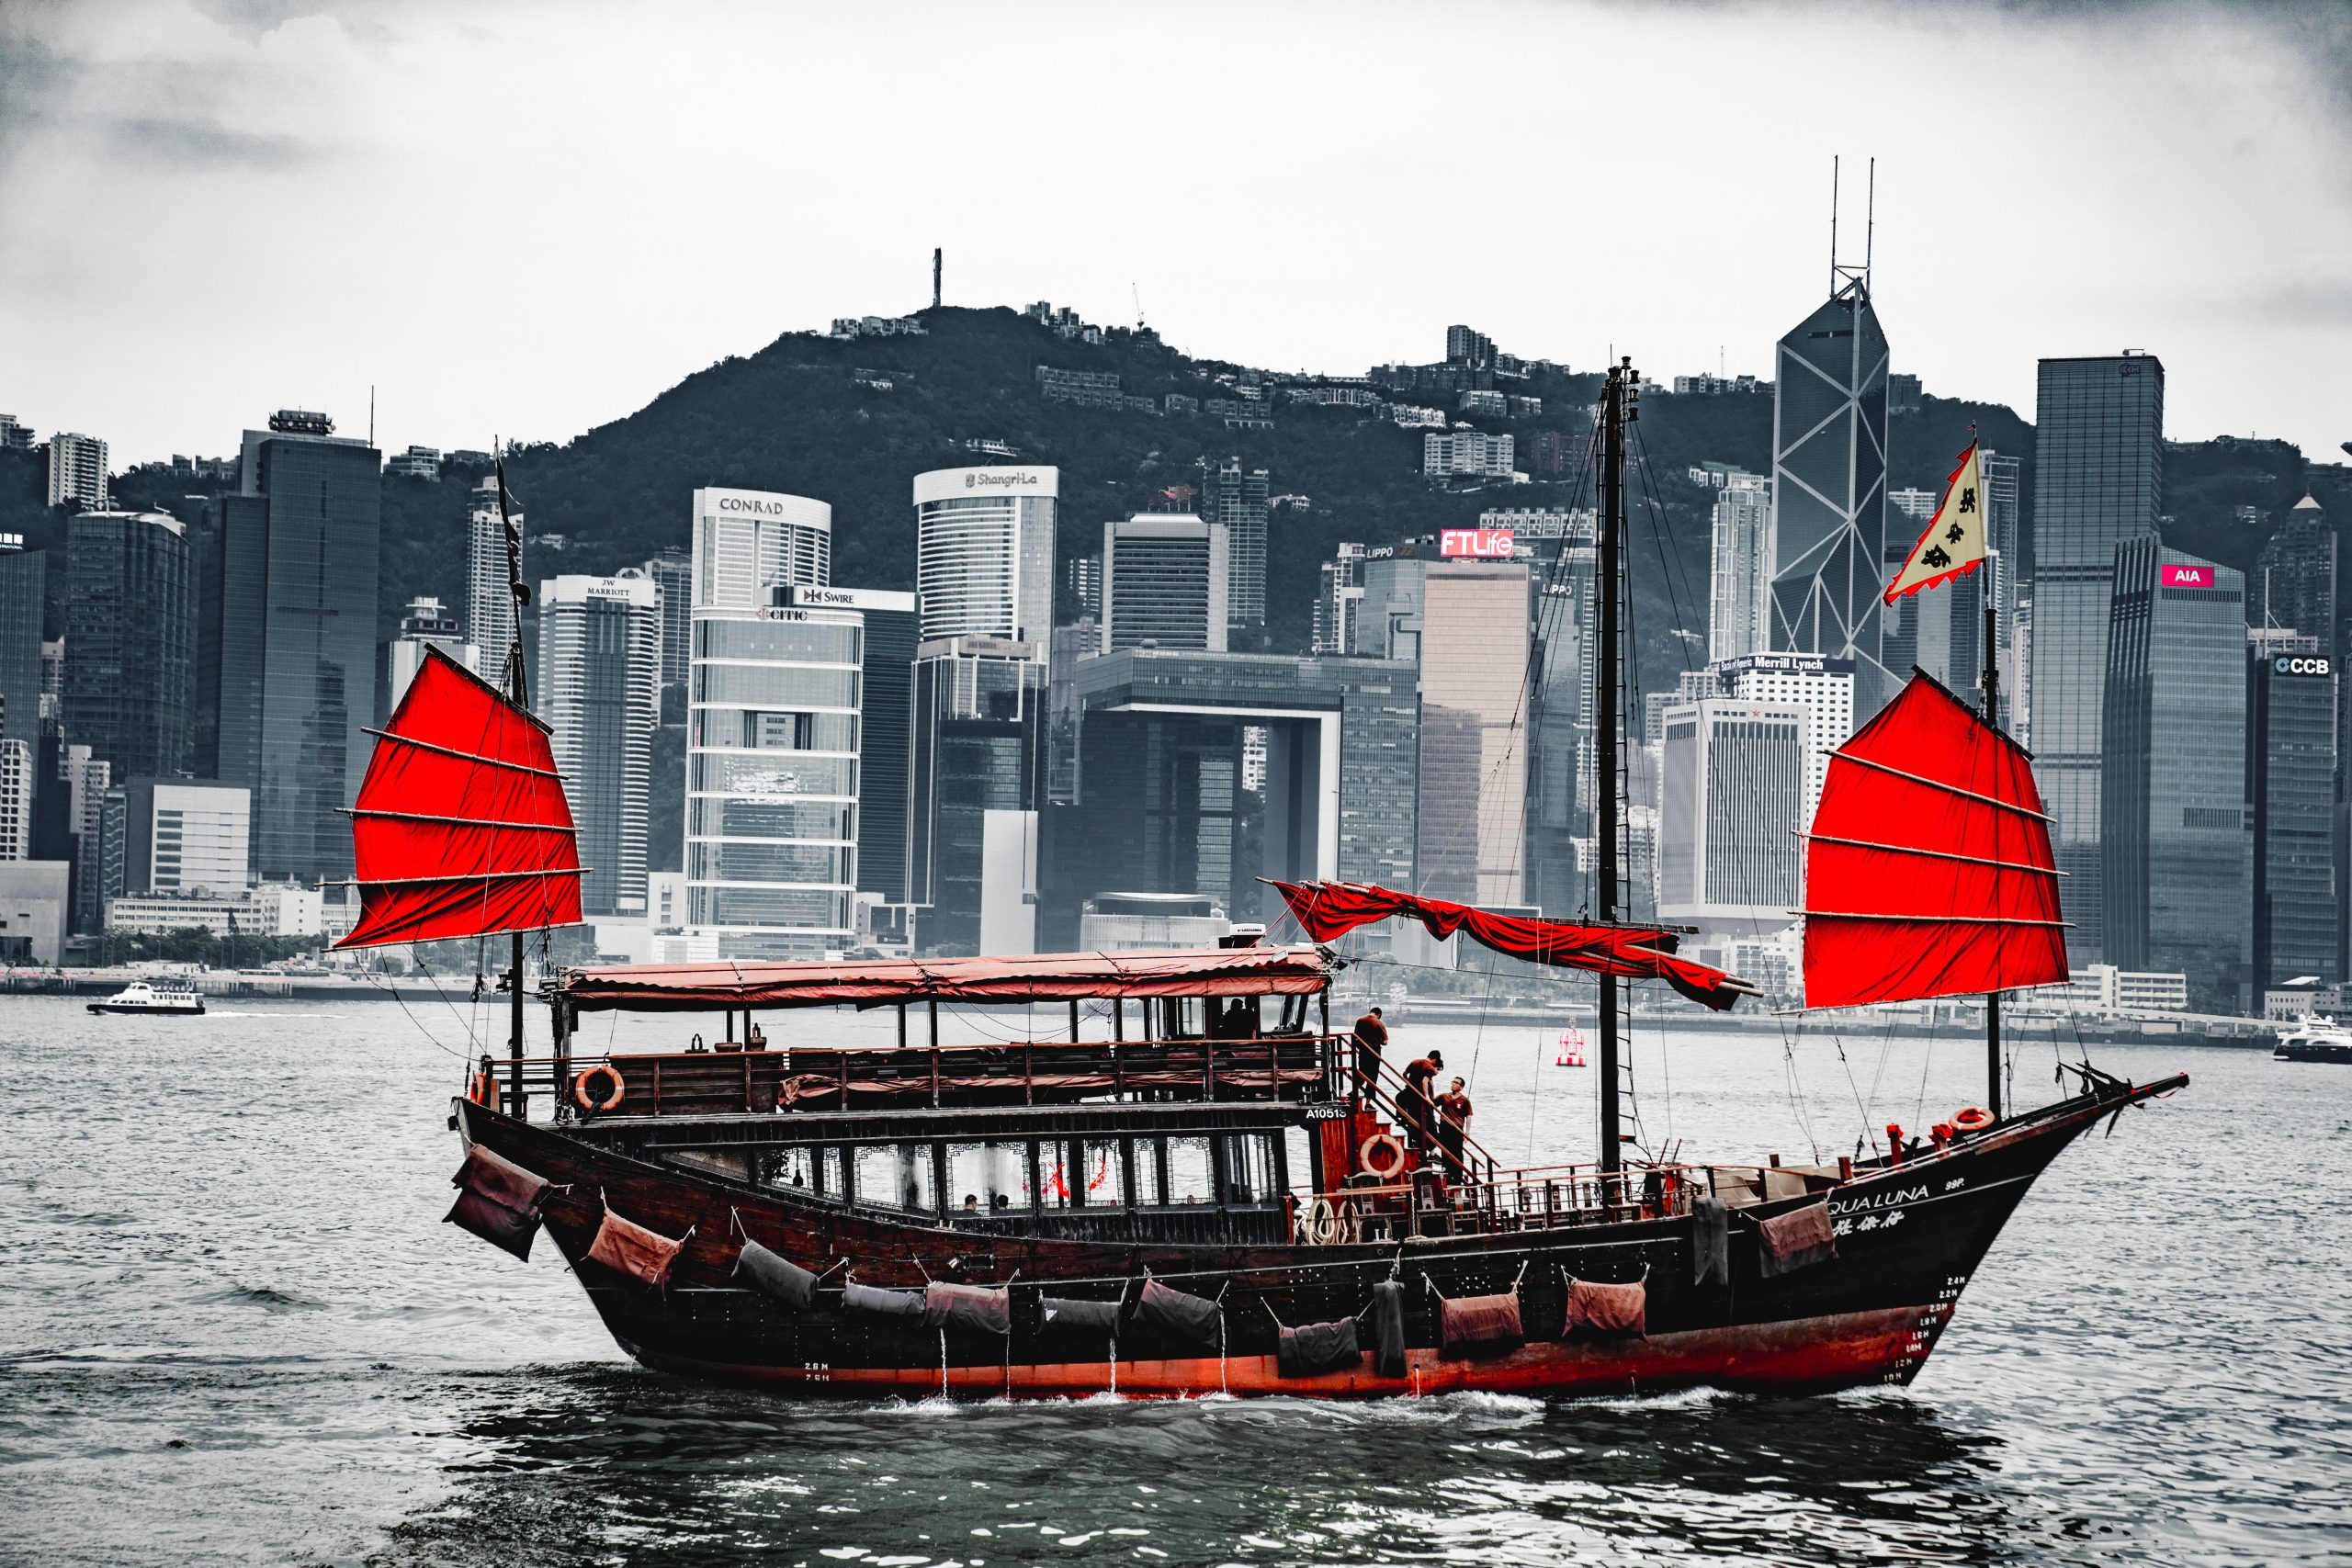 To showcase immigration from Hong Kong to Canada